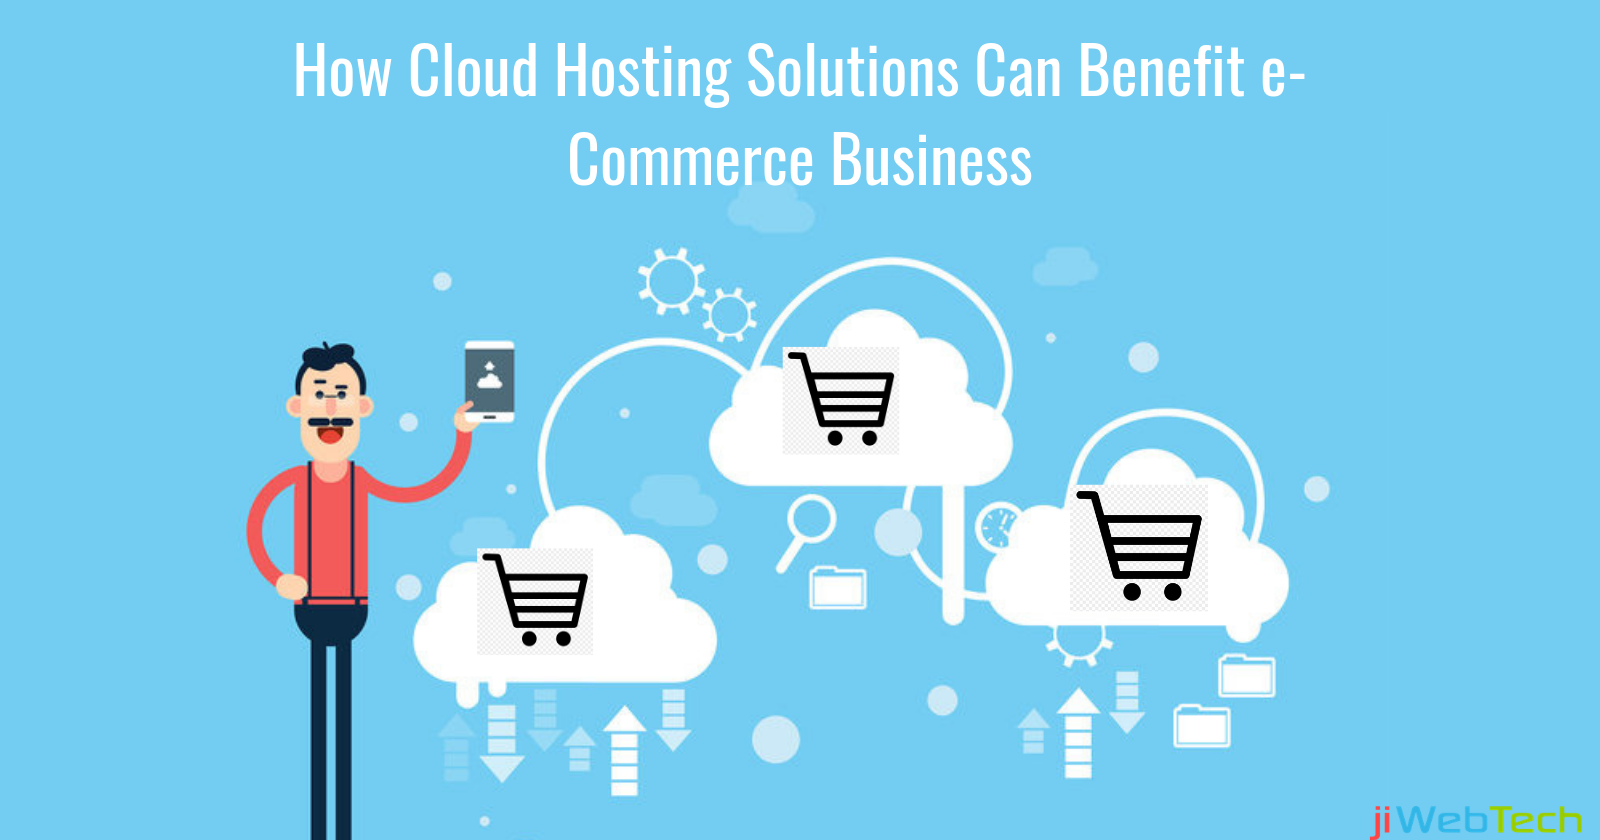 How Cloud Hosting Solutions Can Benefit e-Commerce Business